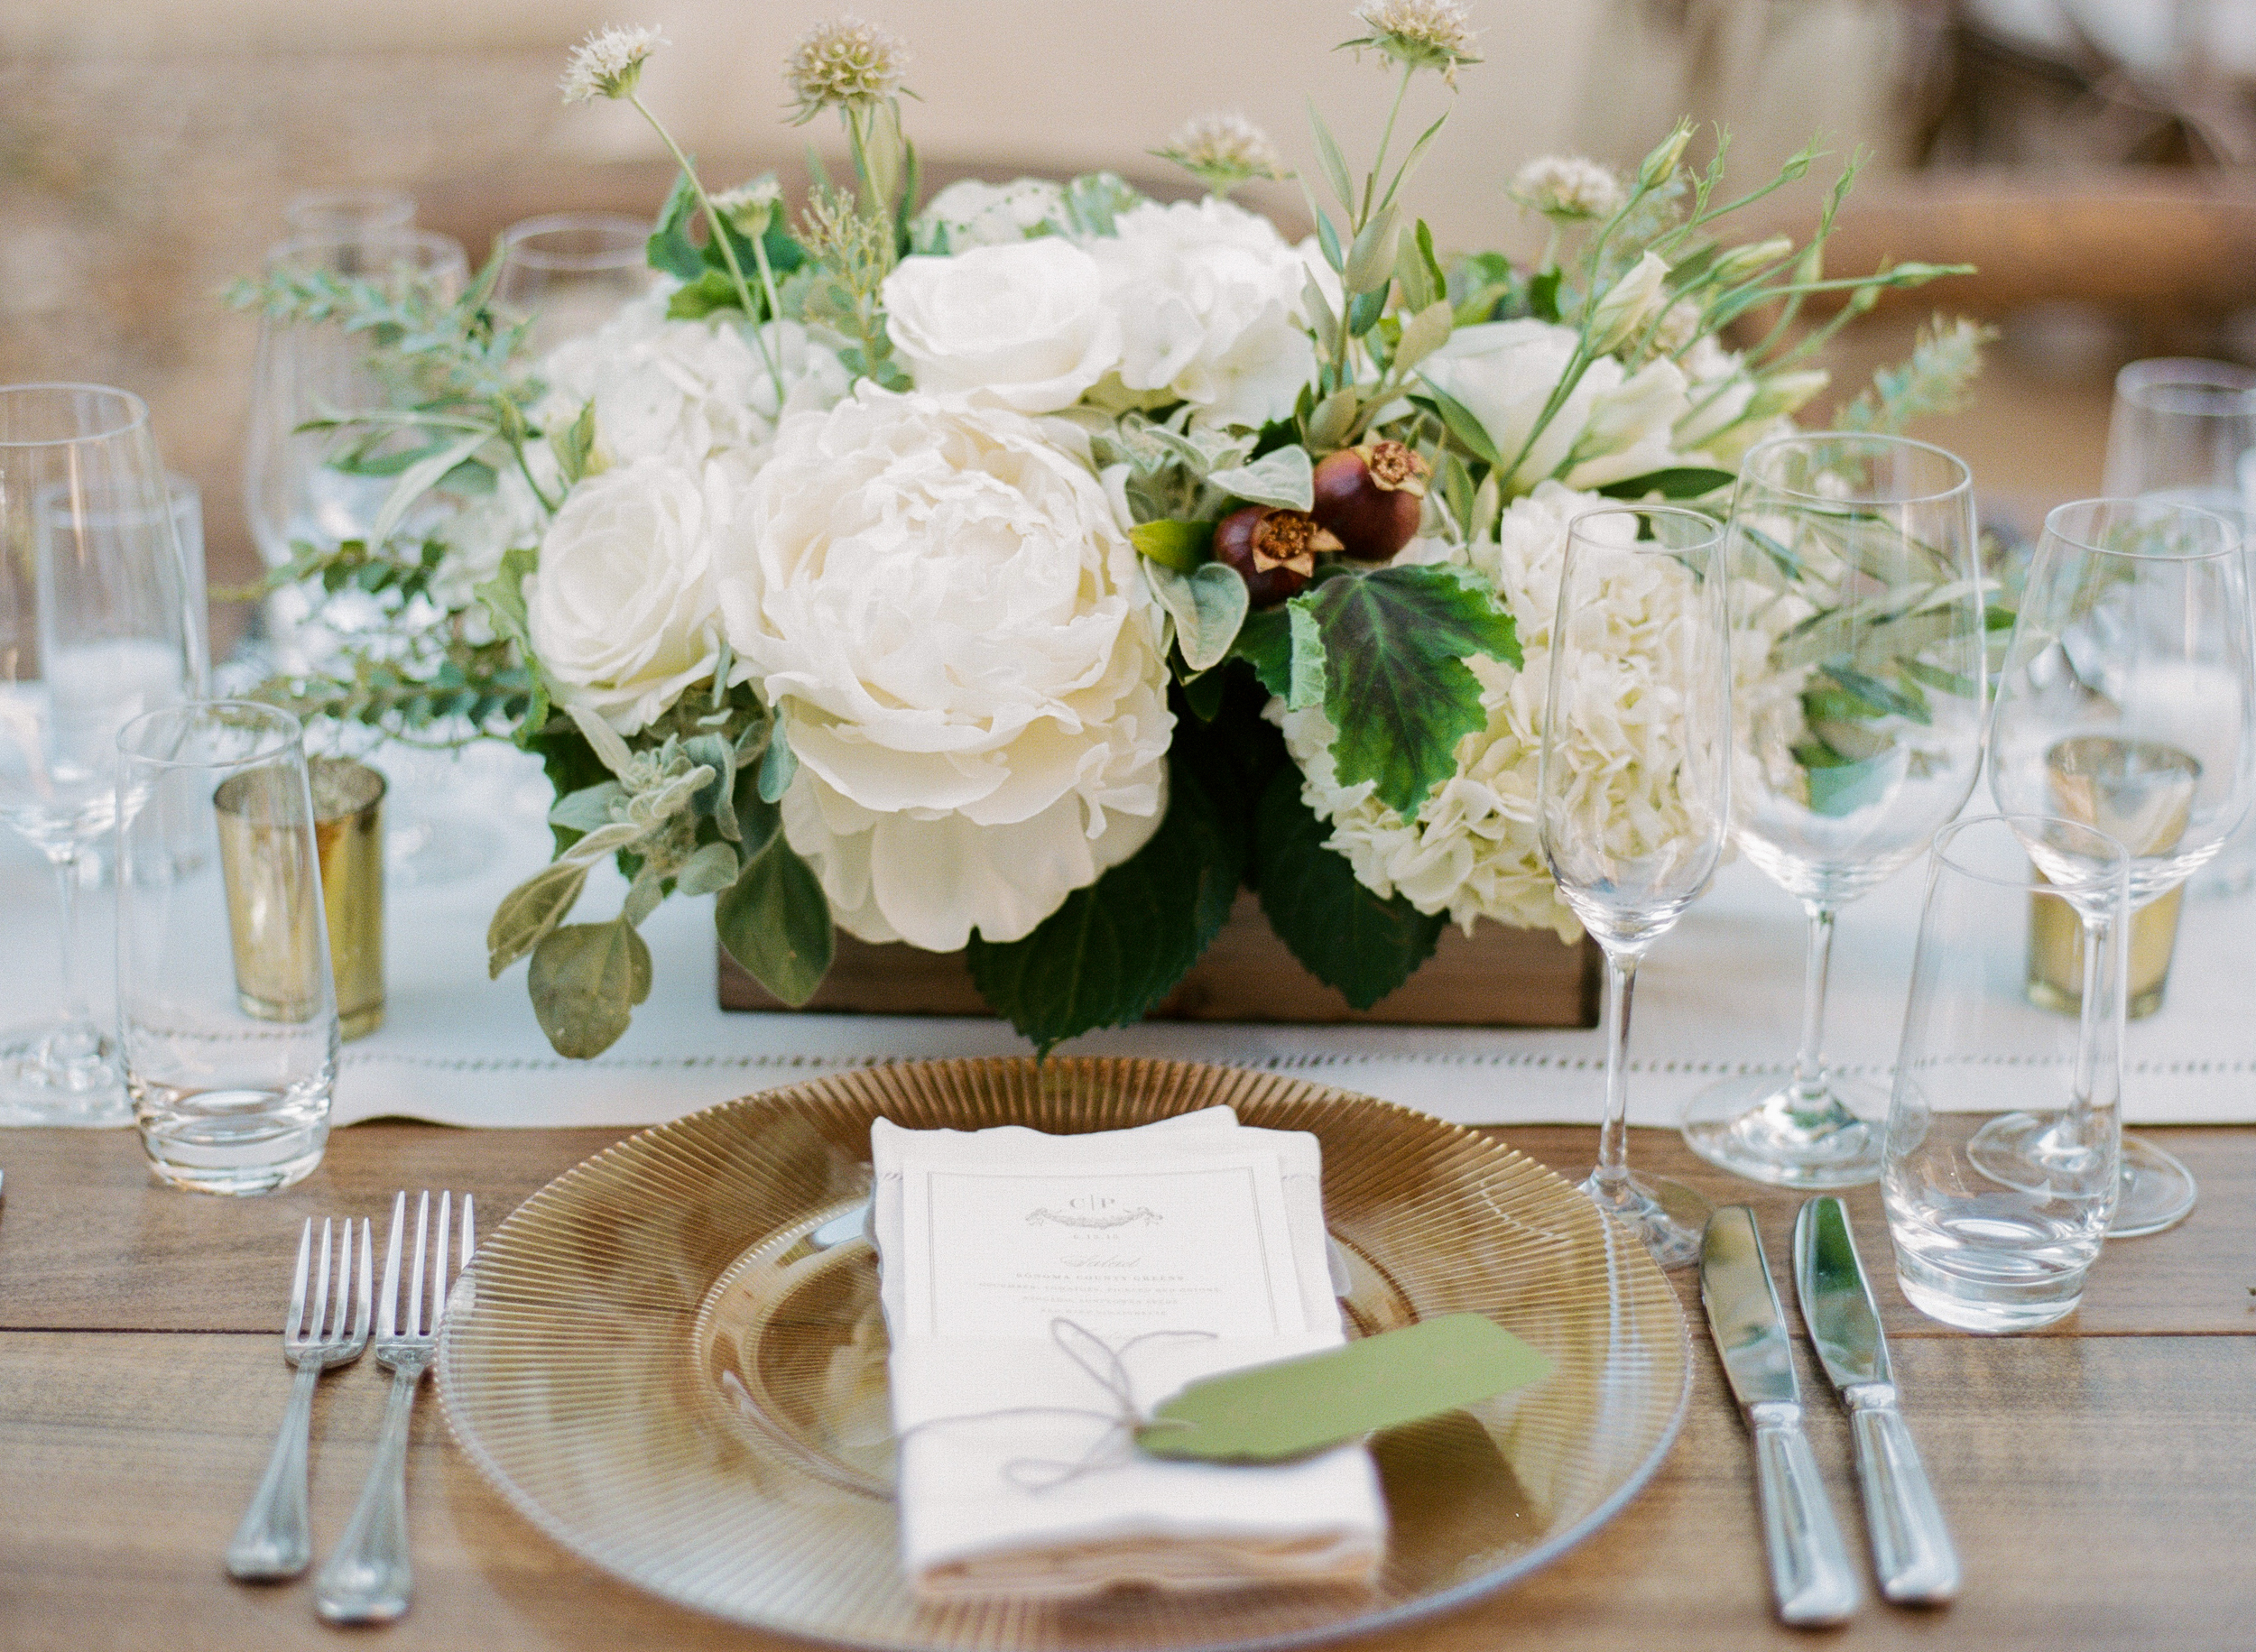 An elegant place setting at the outdoor reception tables; photo by Sylvie Gil